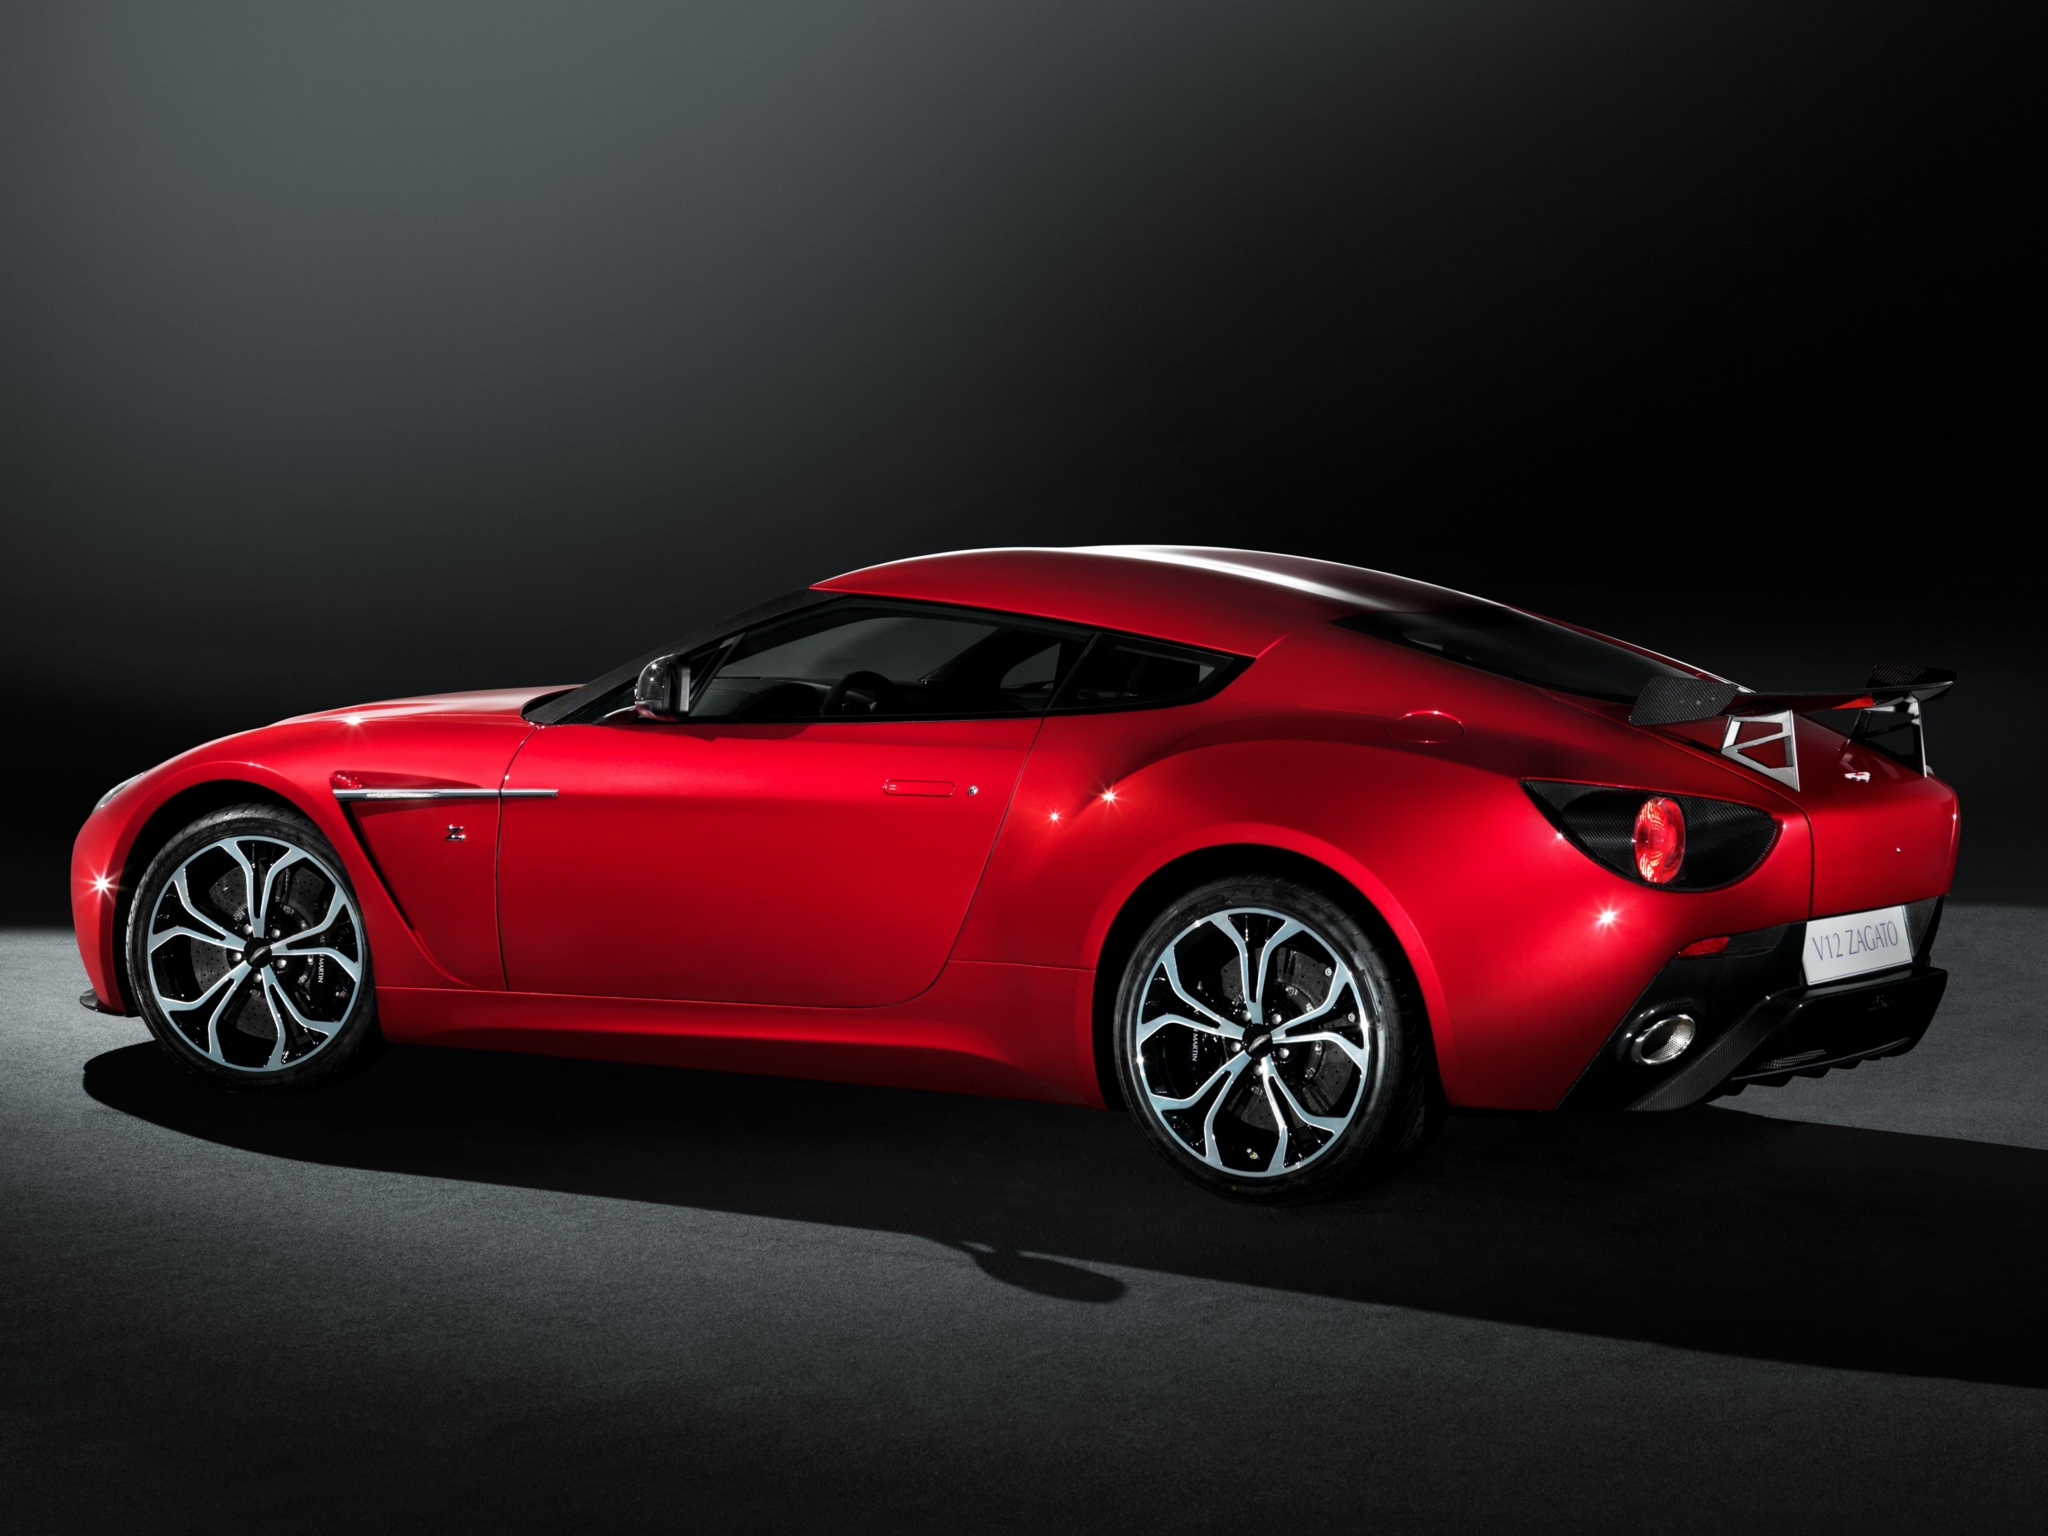 2018 Aston Martin V12 Zagato | Car Photos Catalog 2019